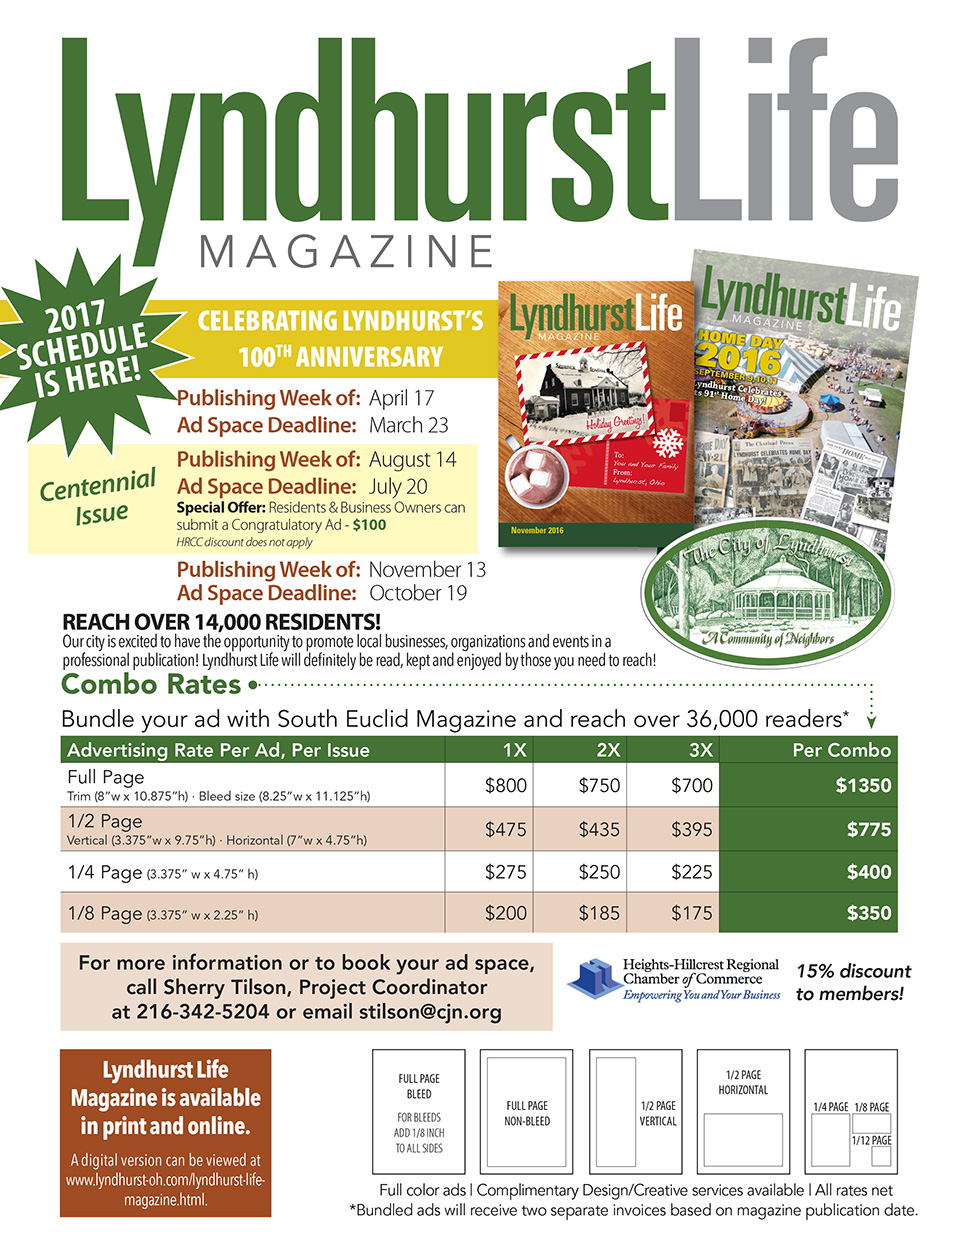 Launch flier in PDF format. Lyndhurst Life Magazine 2017 Ad Schedule - July 20th 2017 Deadline - City of Lyndhurst, Ohio.